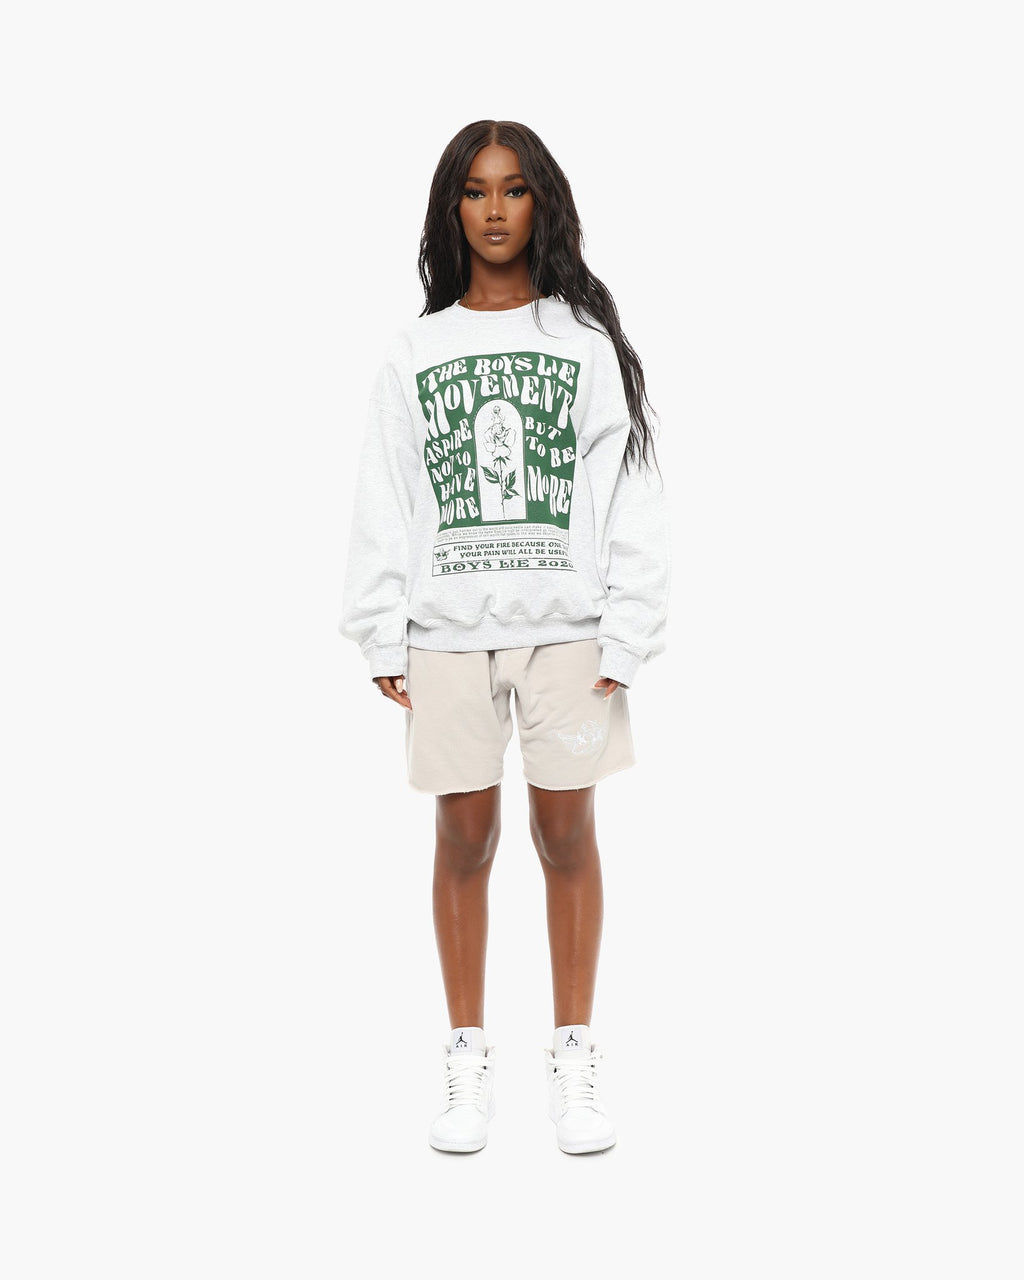 Boys Lie Movement G1 Crewneck